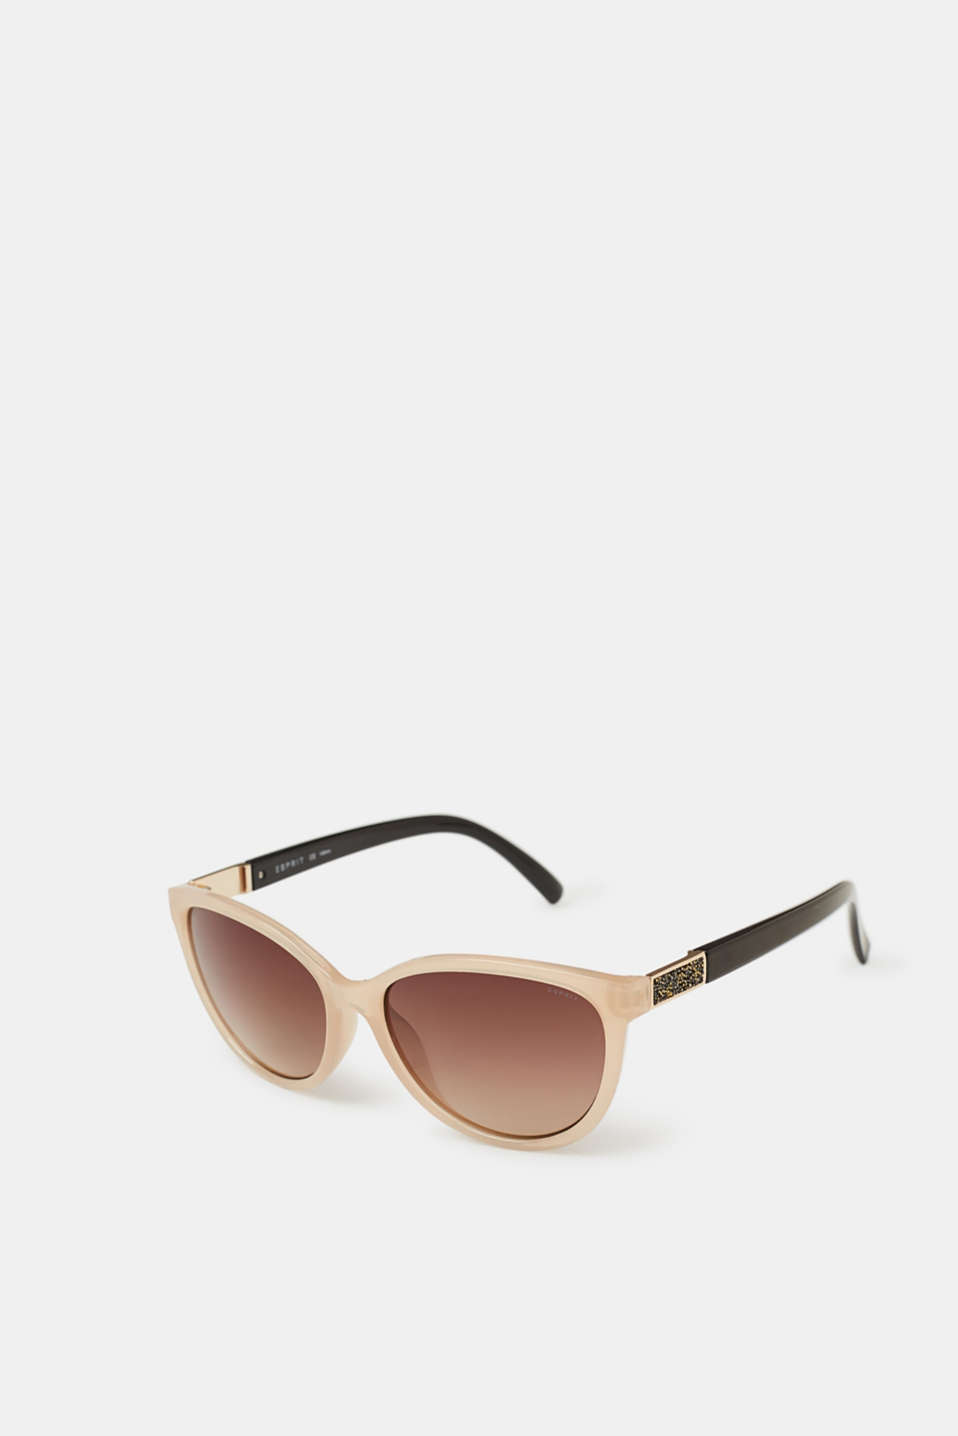 Esprit - Sunglasses with glittery elements